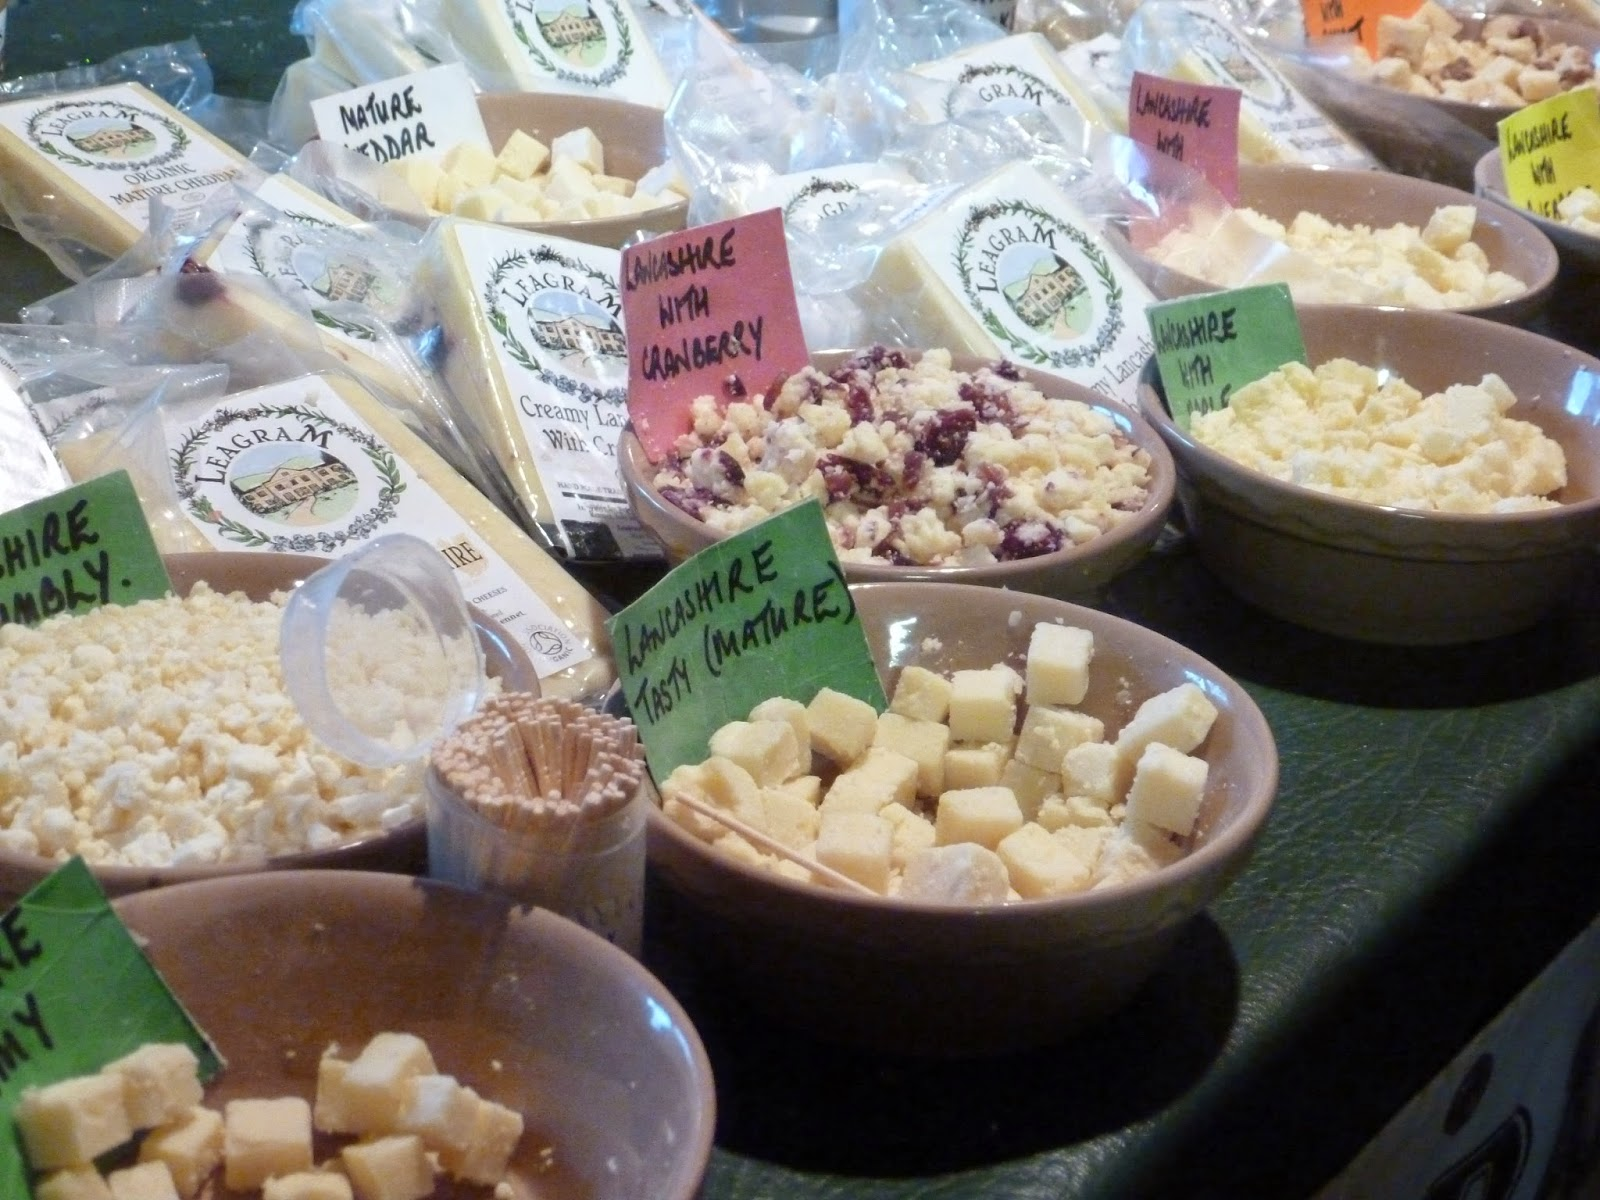 Farmers market stall cheese. Lancashire cheese with cranberry. Crumbly. Mature. Leagram